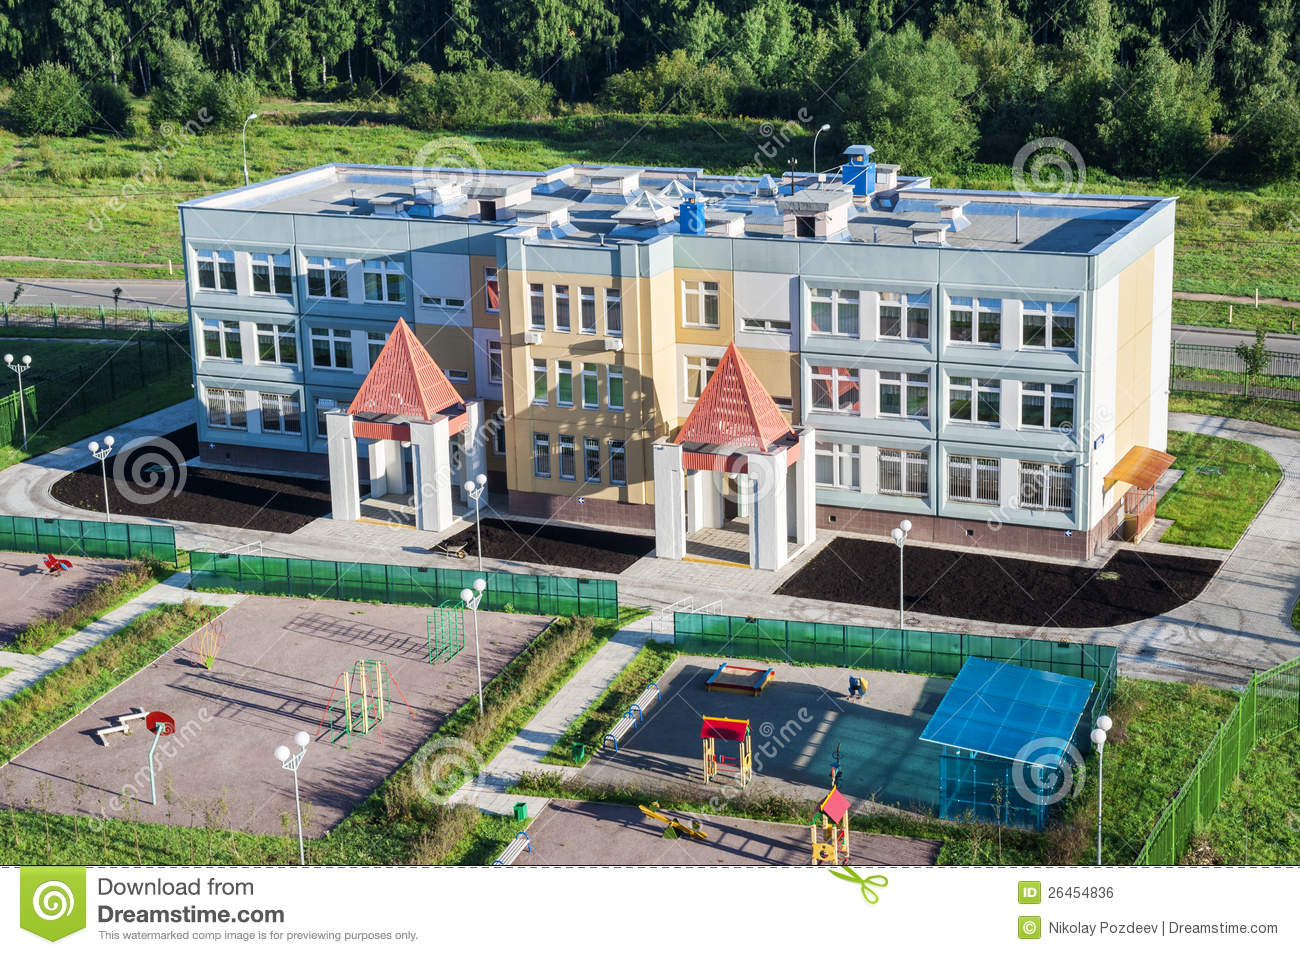 Nursery School Building With Playgrounds Stock Photo Image 26454836